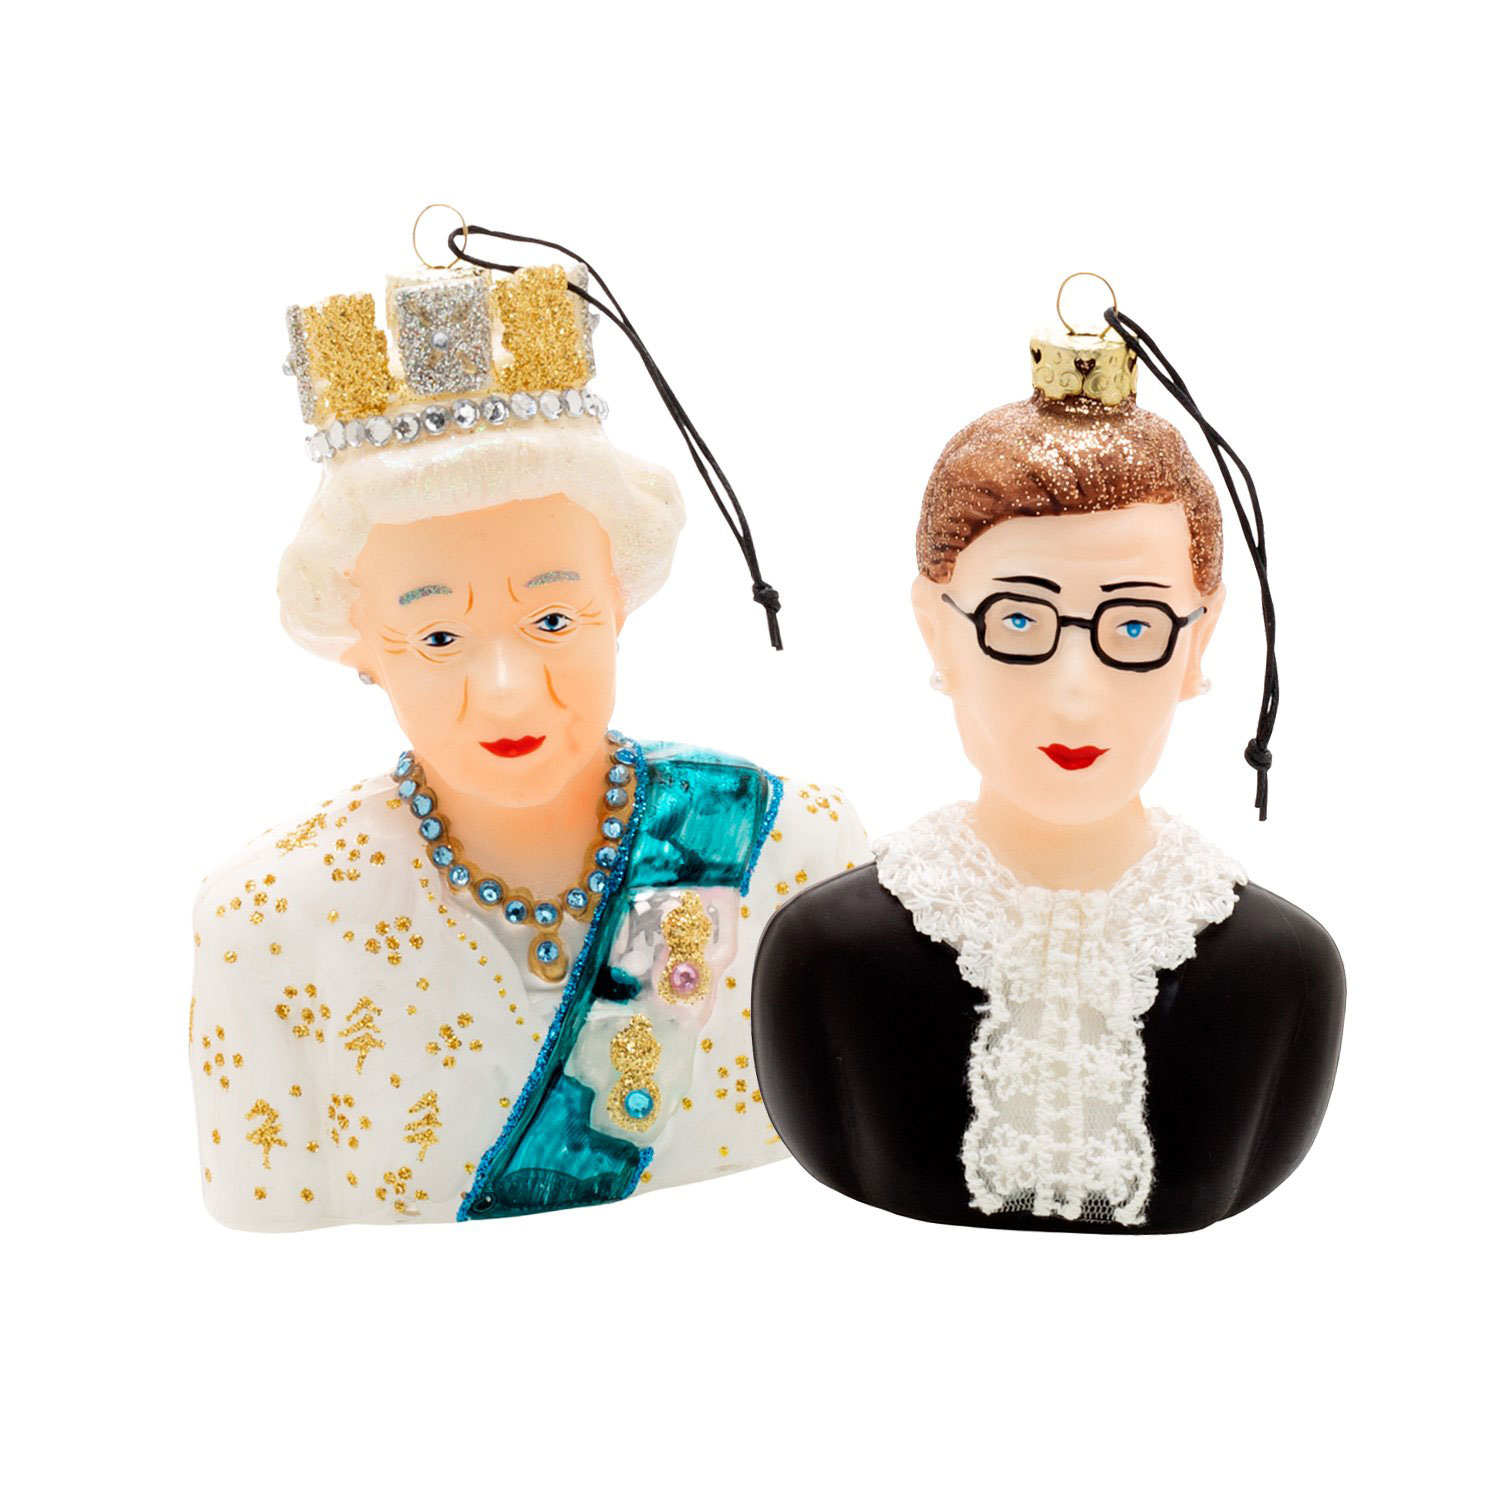 Best Christmas gifts 2020 - Queen Elizabeth and RBG Ornament Set